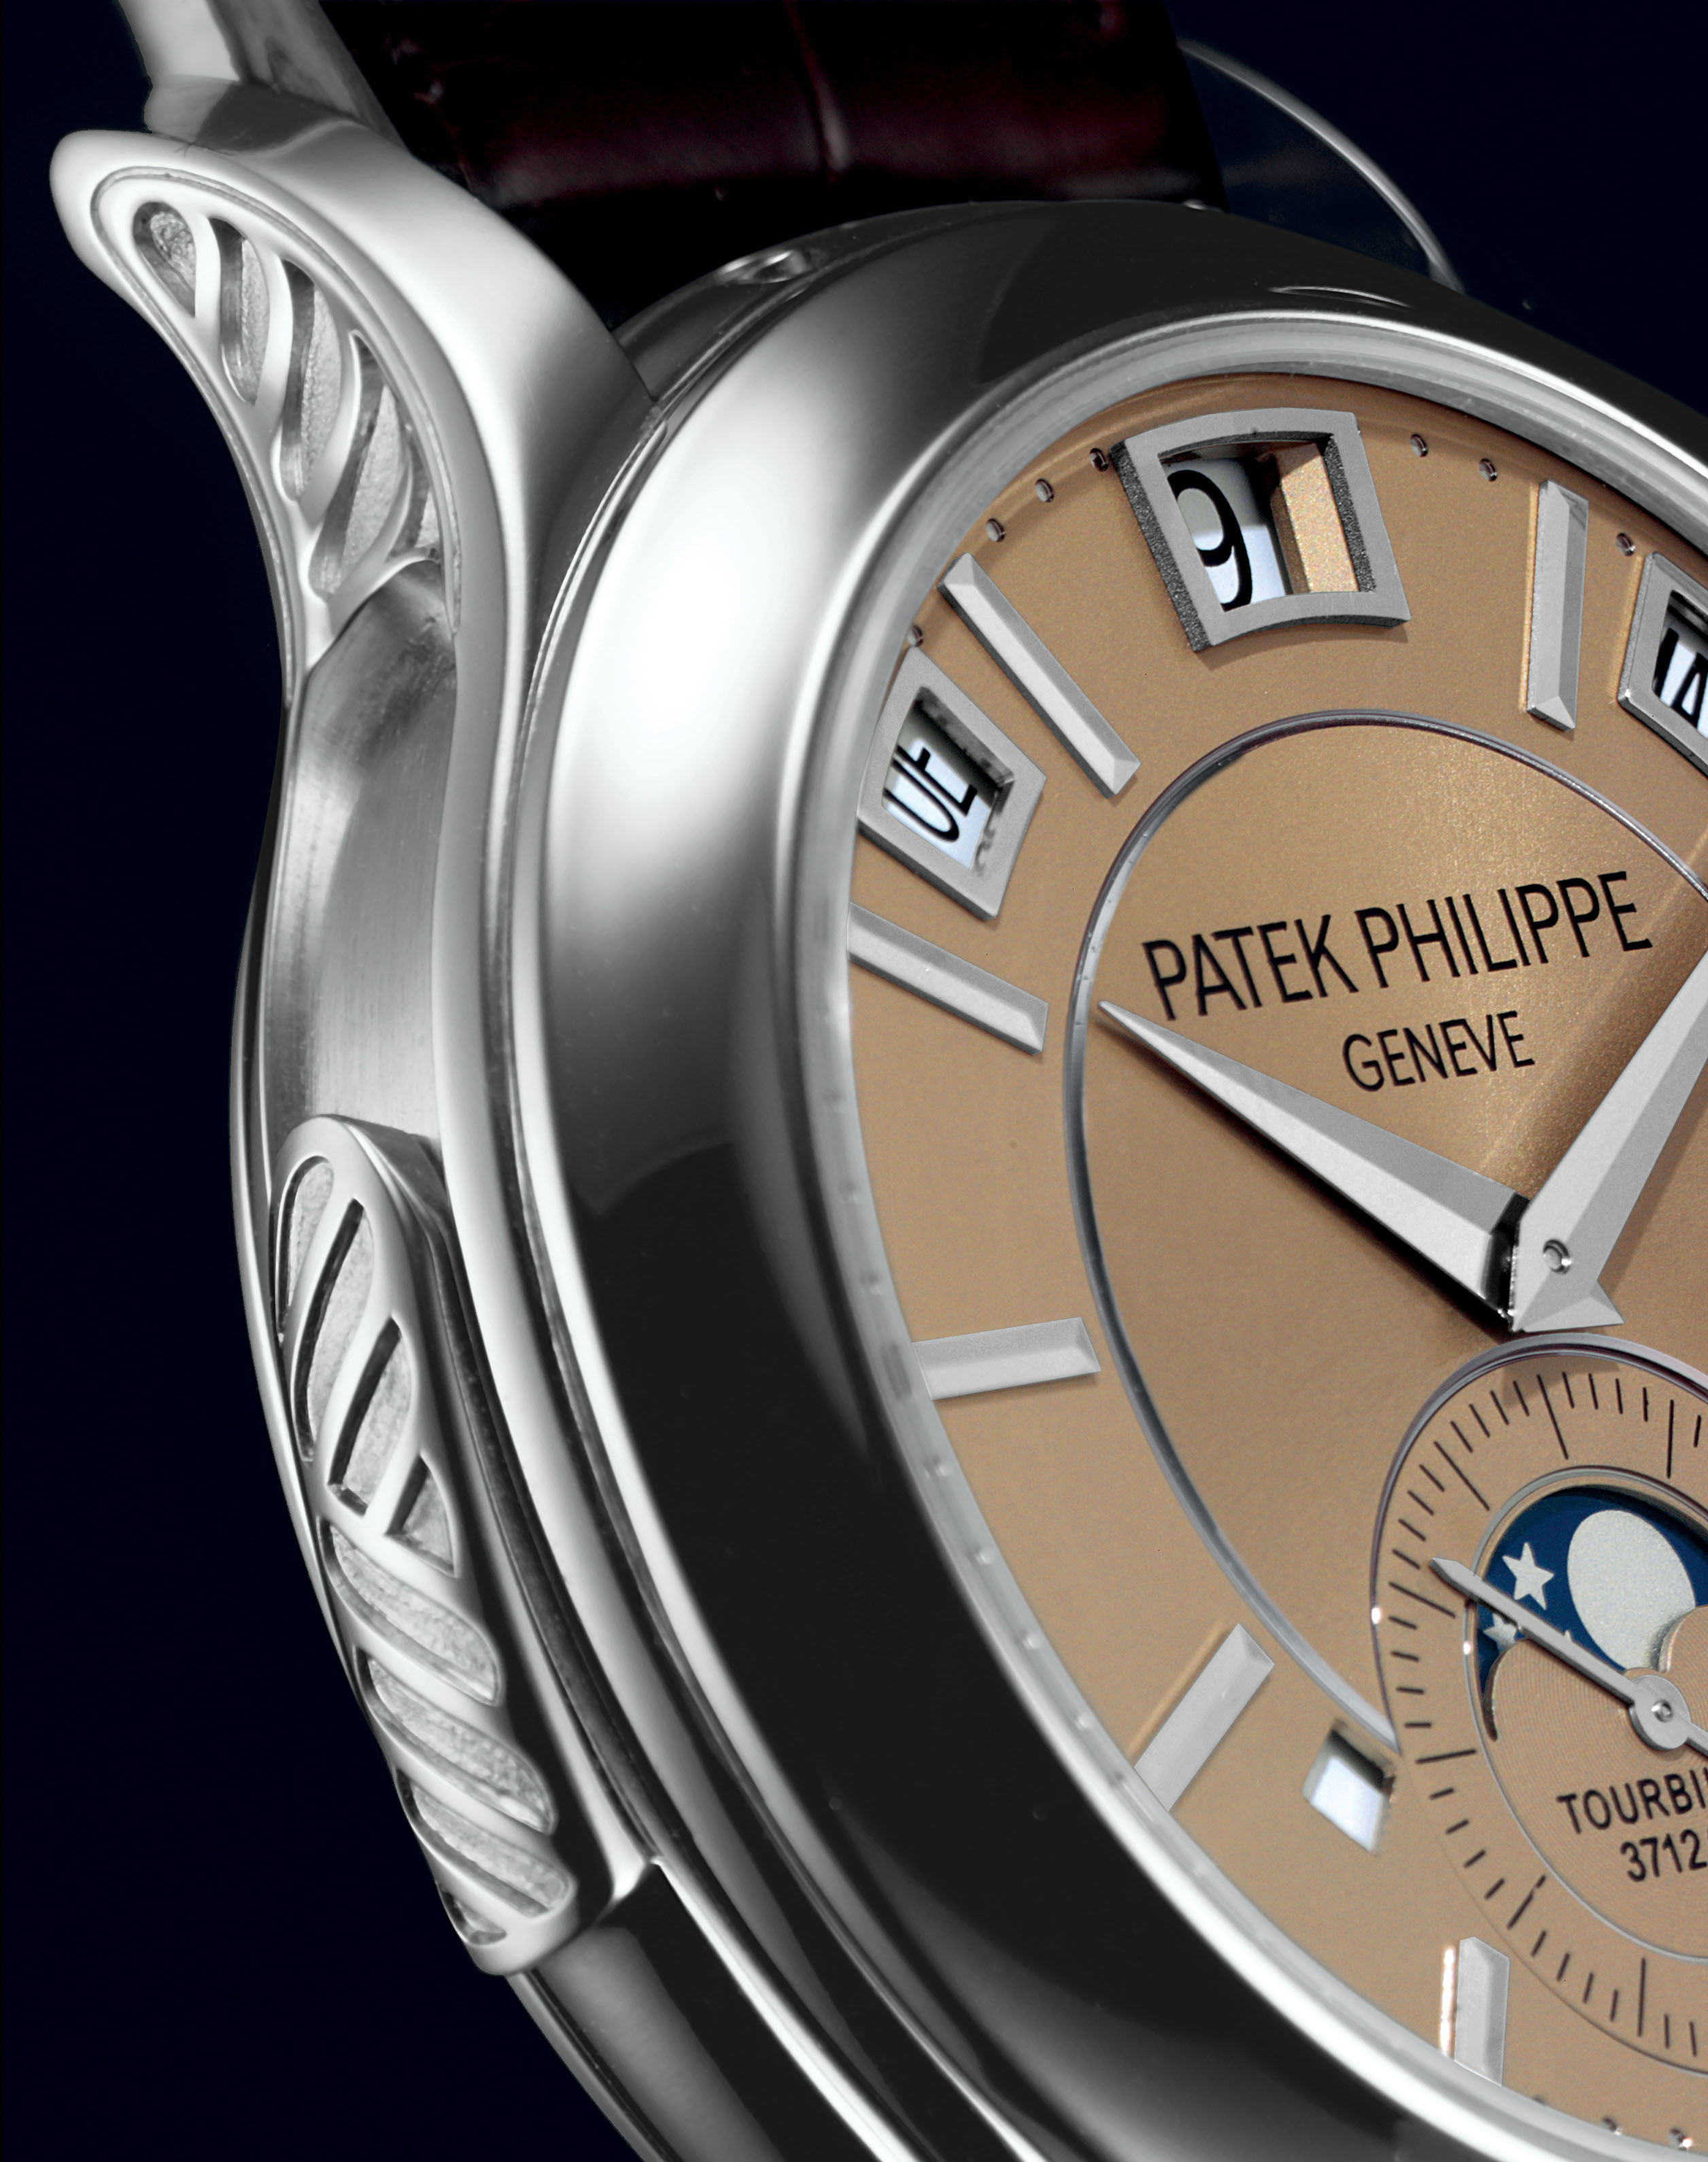 PATEK PHILIPPE. A VERY FINE AND EXTREMELY RARE PLATINUM MINUTE REPEATING INSTANTANEOUS PERPETUAL CALENDAR TOURBILLON WRISTWATCH WITH LEAP YEAR INDICATOR, DAY/NIGHT DISPLAY, ORIGINAL CERTIFICATE AND BOX, AND ADDITIONAL CASE BACK